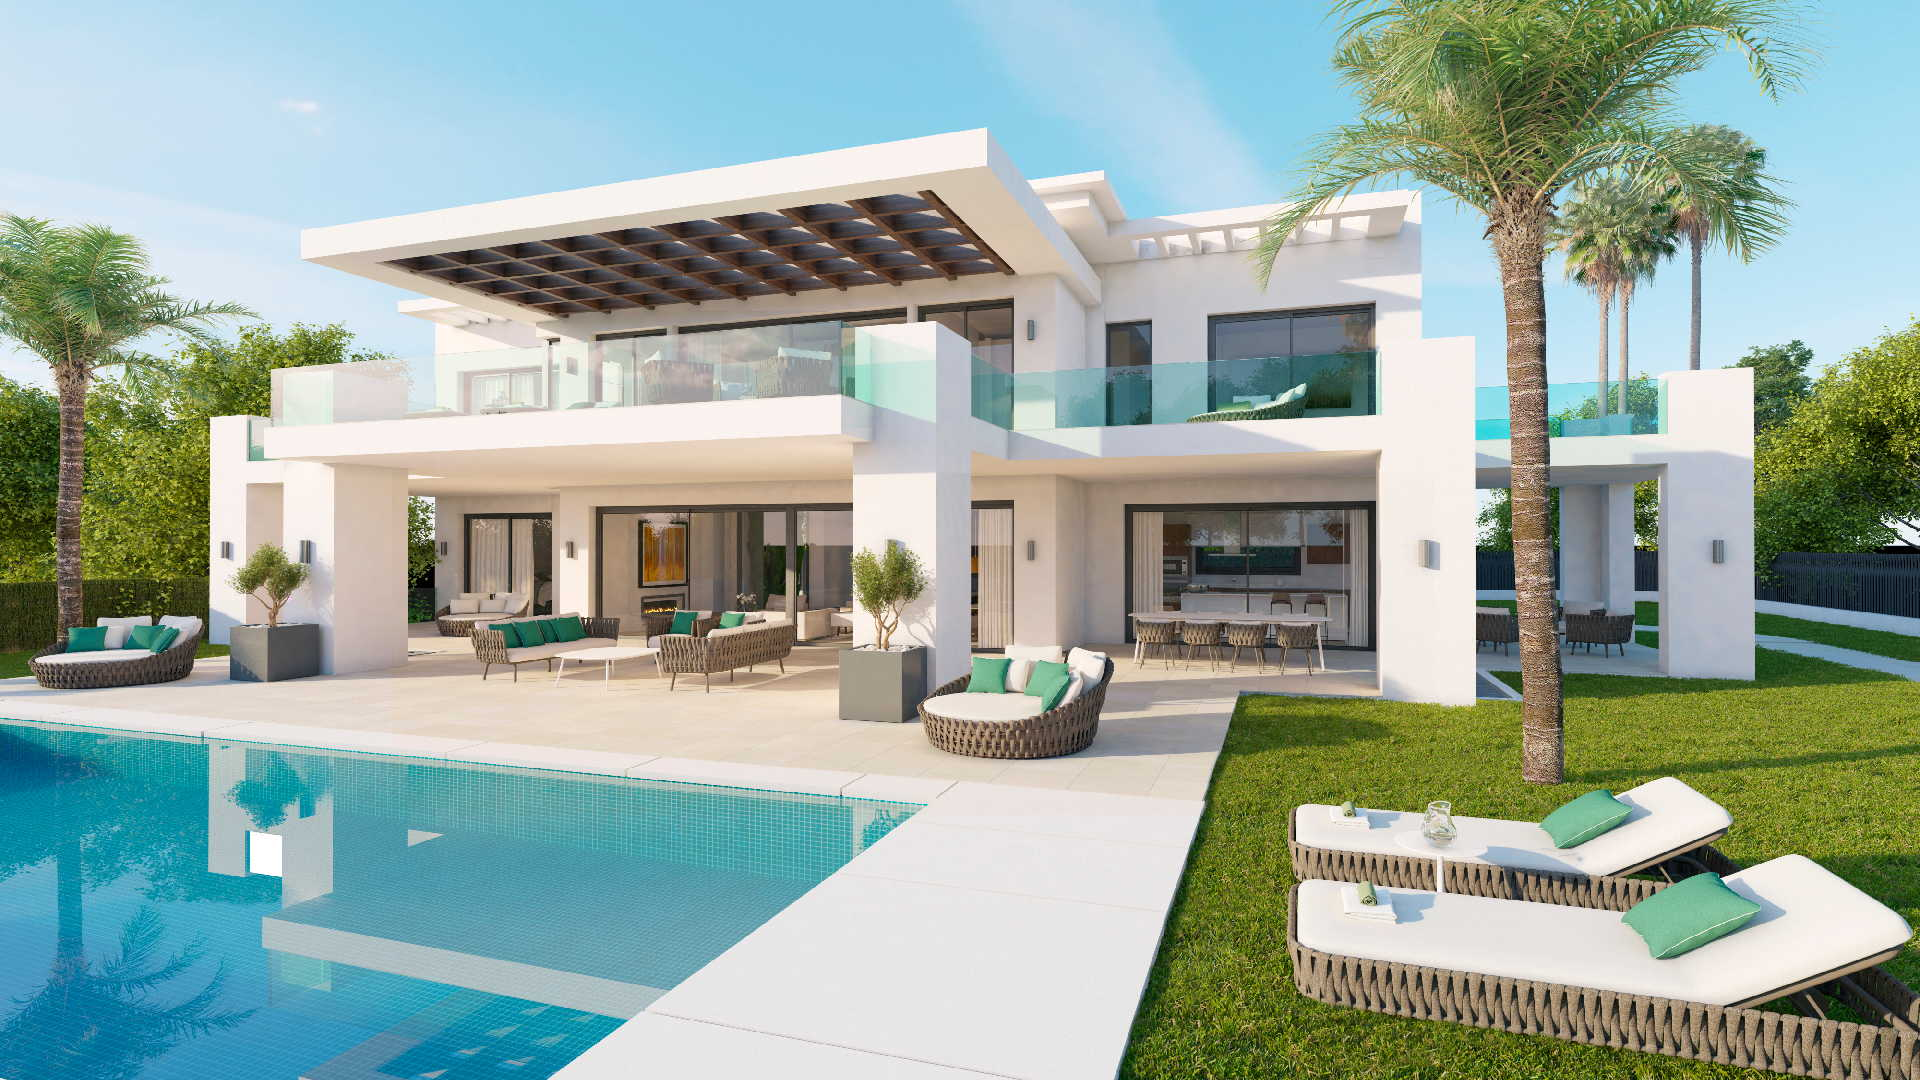 New modern villa in los olivos nueva andalucia residential for Contemporary villa plans